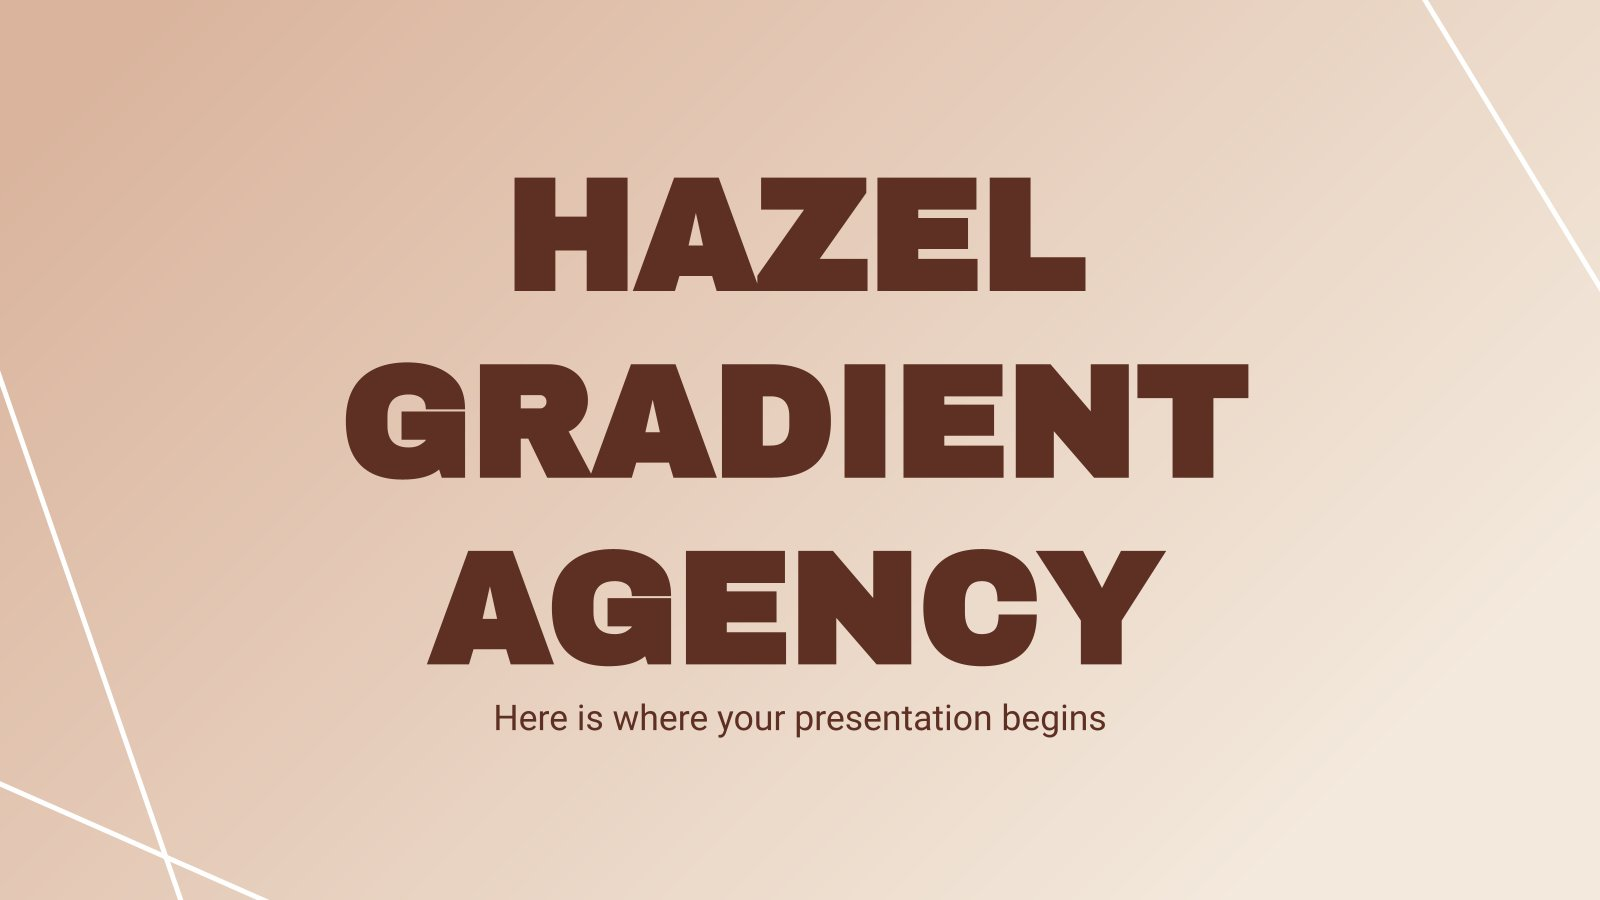 Hazel Gradients Agency presentation template